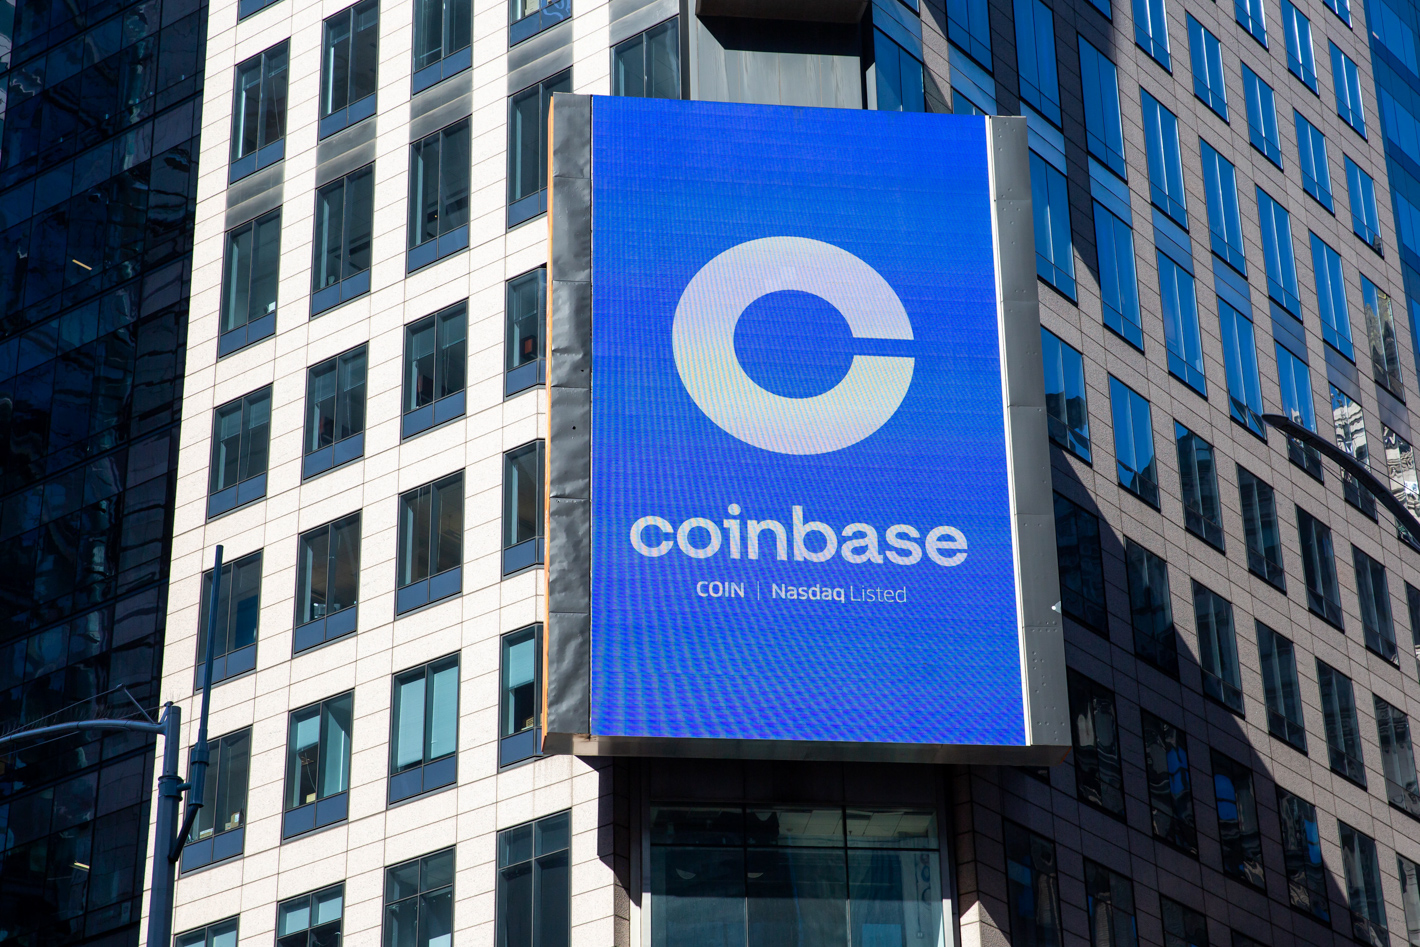 Coinbase Hires Former SEC Alum to Lead Exchange's Capital Markets Legal Work